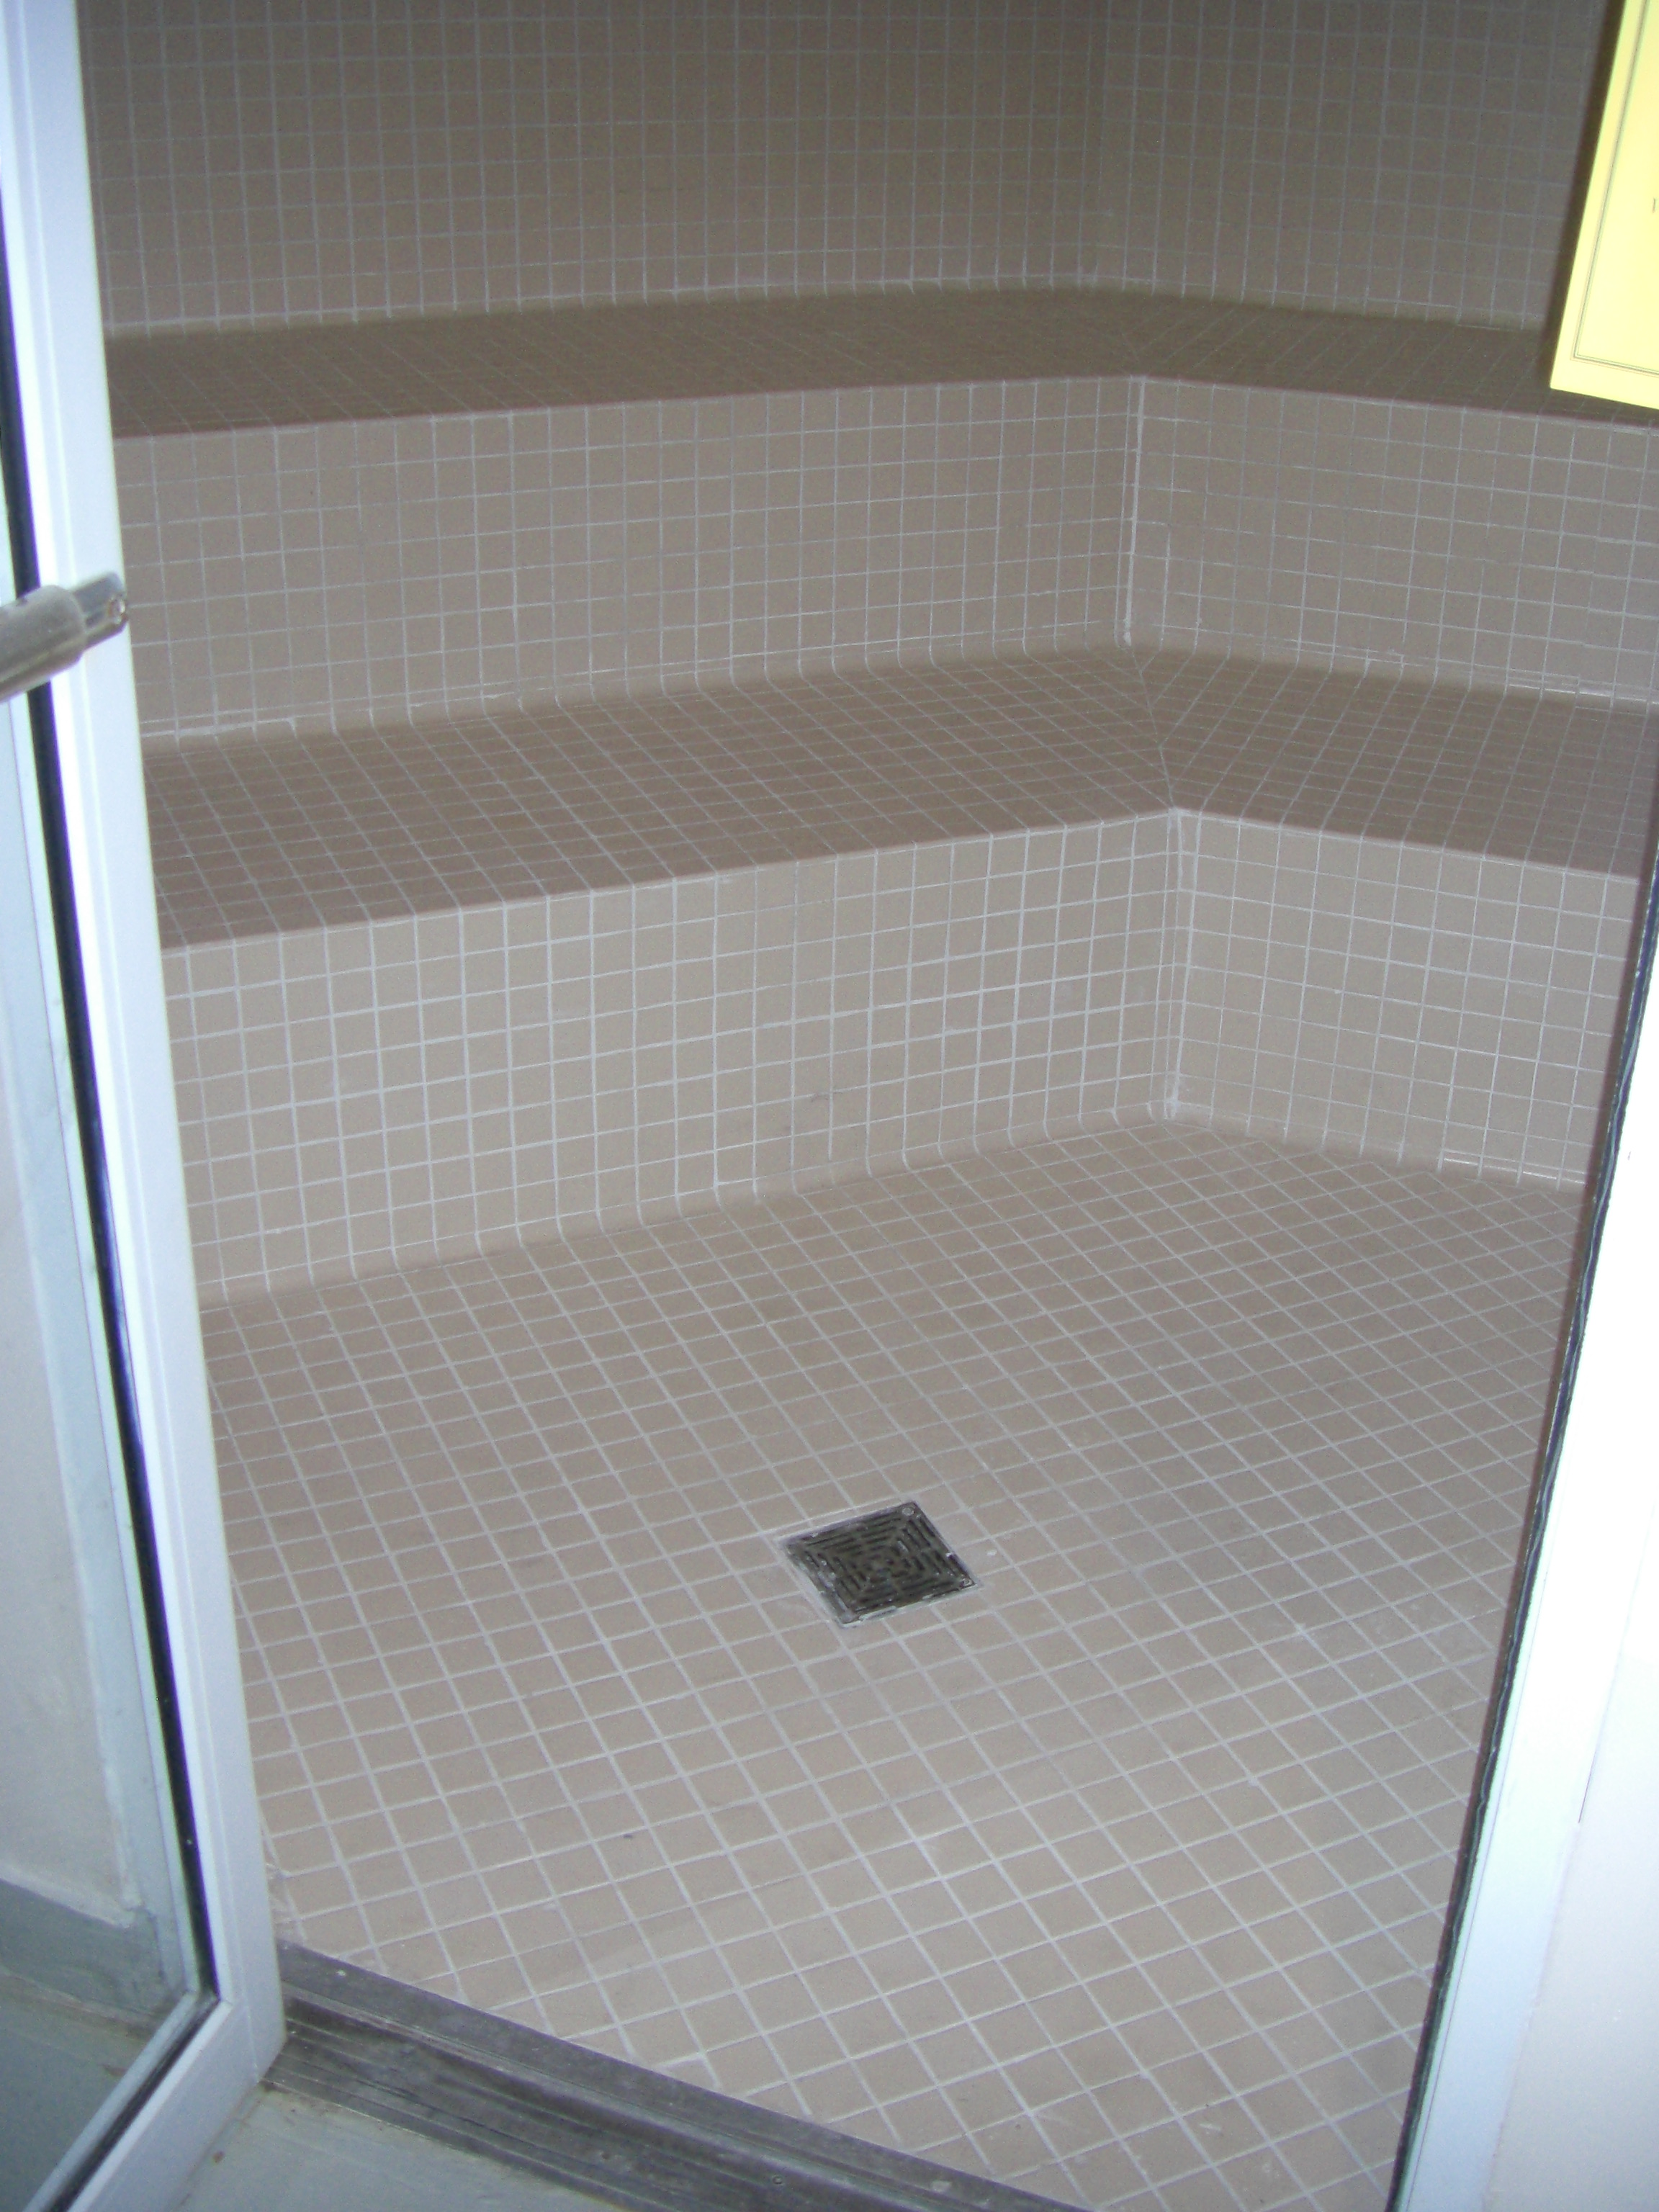 Anti slip coating application on ceramic tiles in spa steam room dailygadgetfo Images